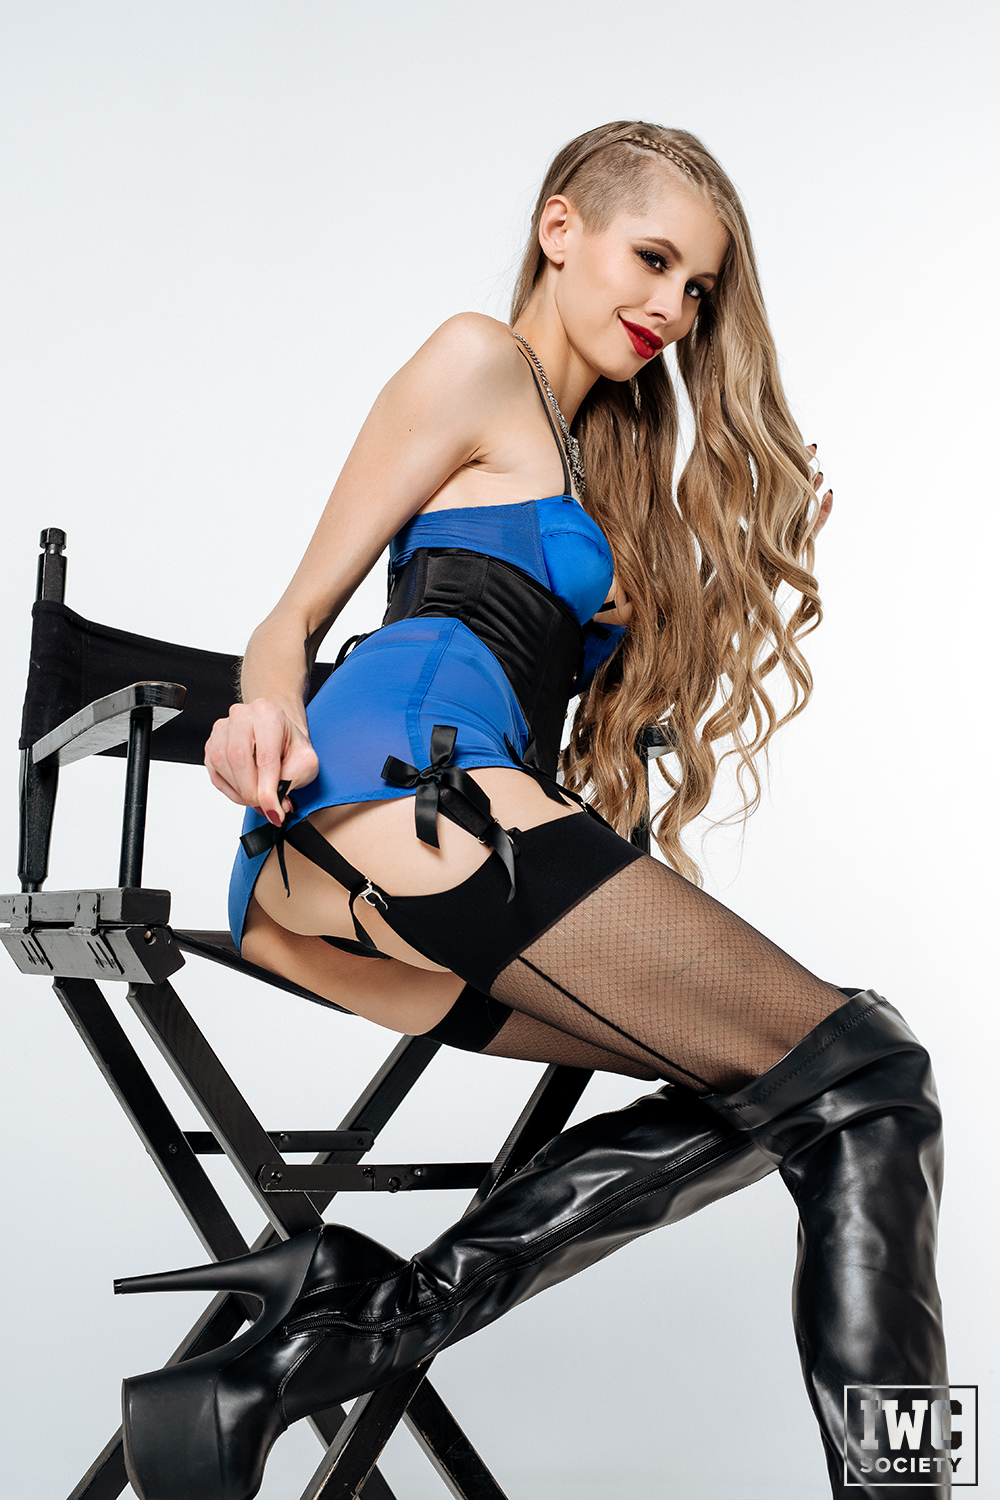 blonde dominatrix showing off her butt garters and long hair